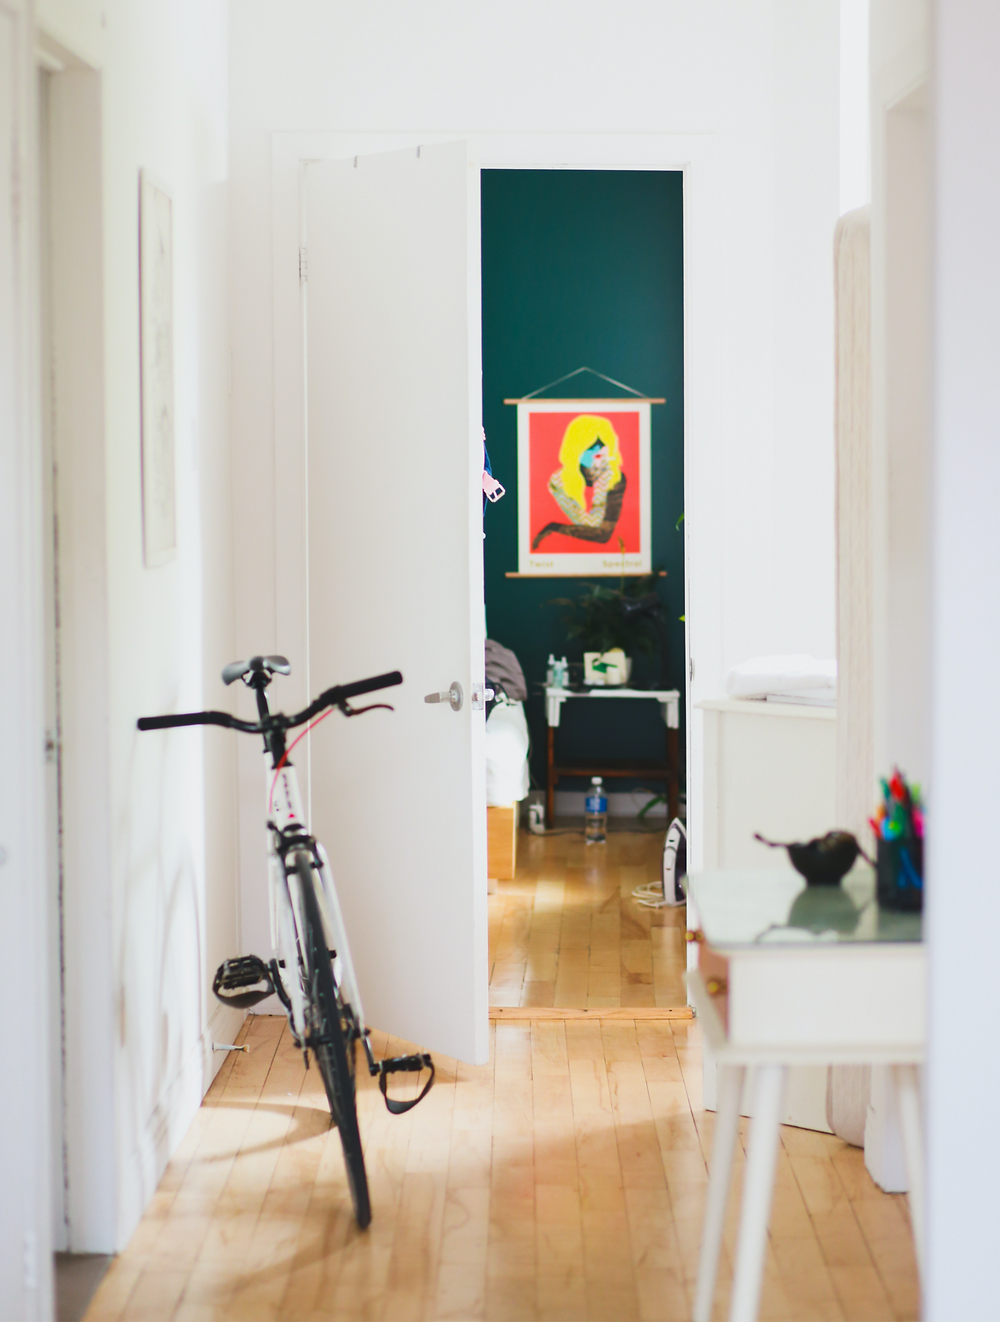 Long apartment hallway with bike and a bold piece of art and deep blue green accent wall at end.